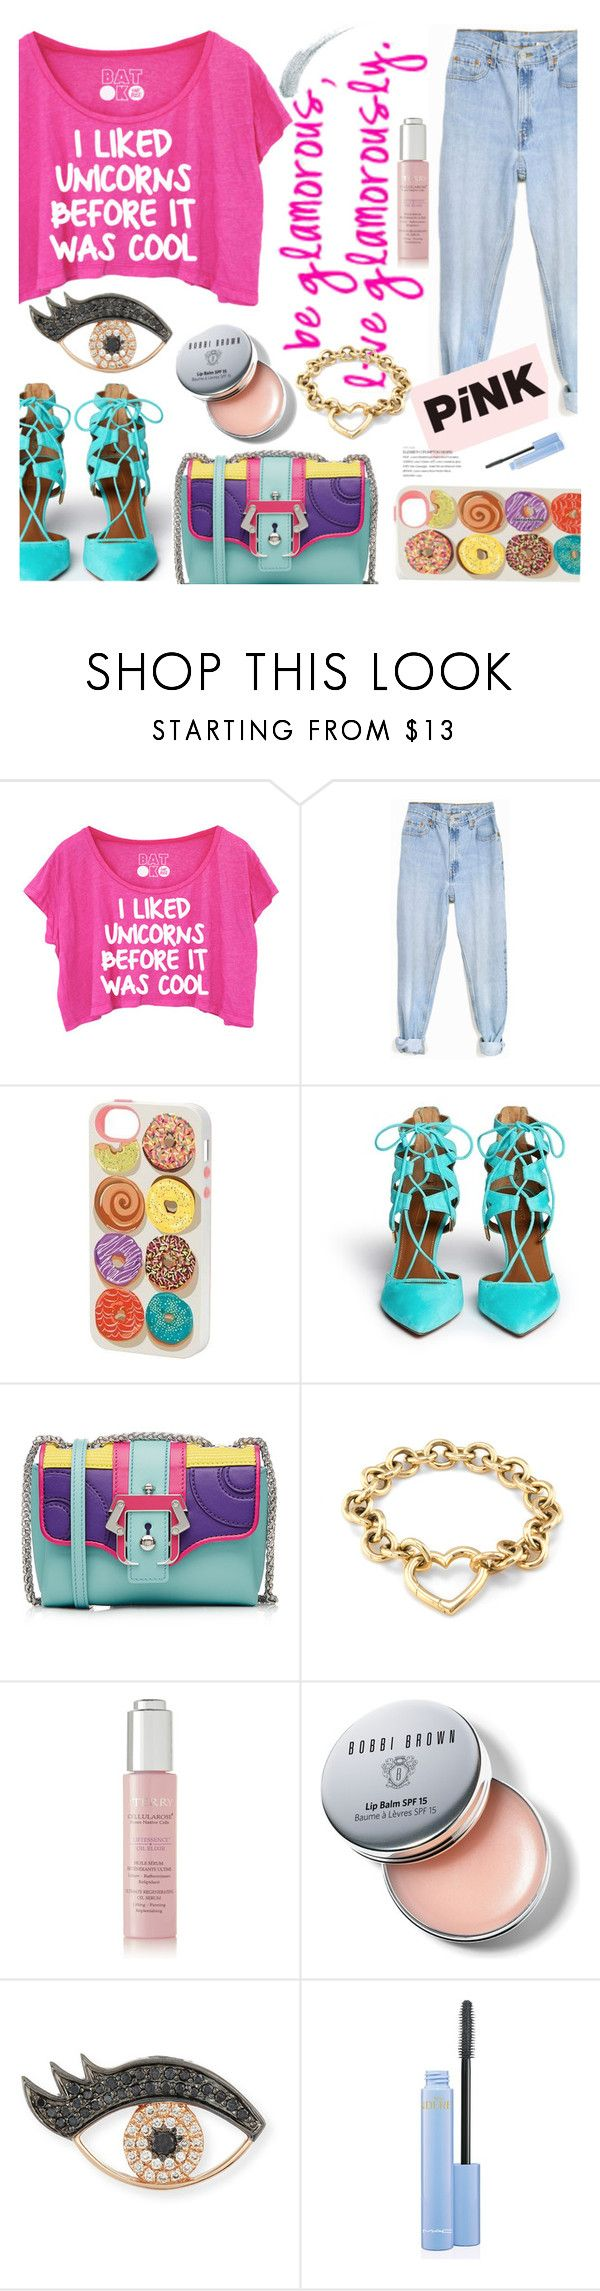 """Ready for NYFW"" by dorachelariu ❤ liked on Polyvore featuring Levi's, Paper Source, Aquazzura, Paula Cademartori, Tiffany & Co., By Terry, Bobbi Brown Cosmetics, Sydney Evan, Kevyn Aucoin and NYFW"